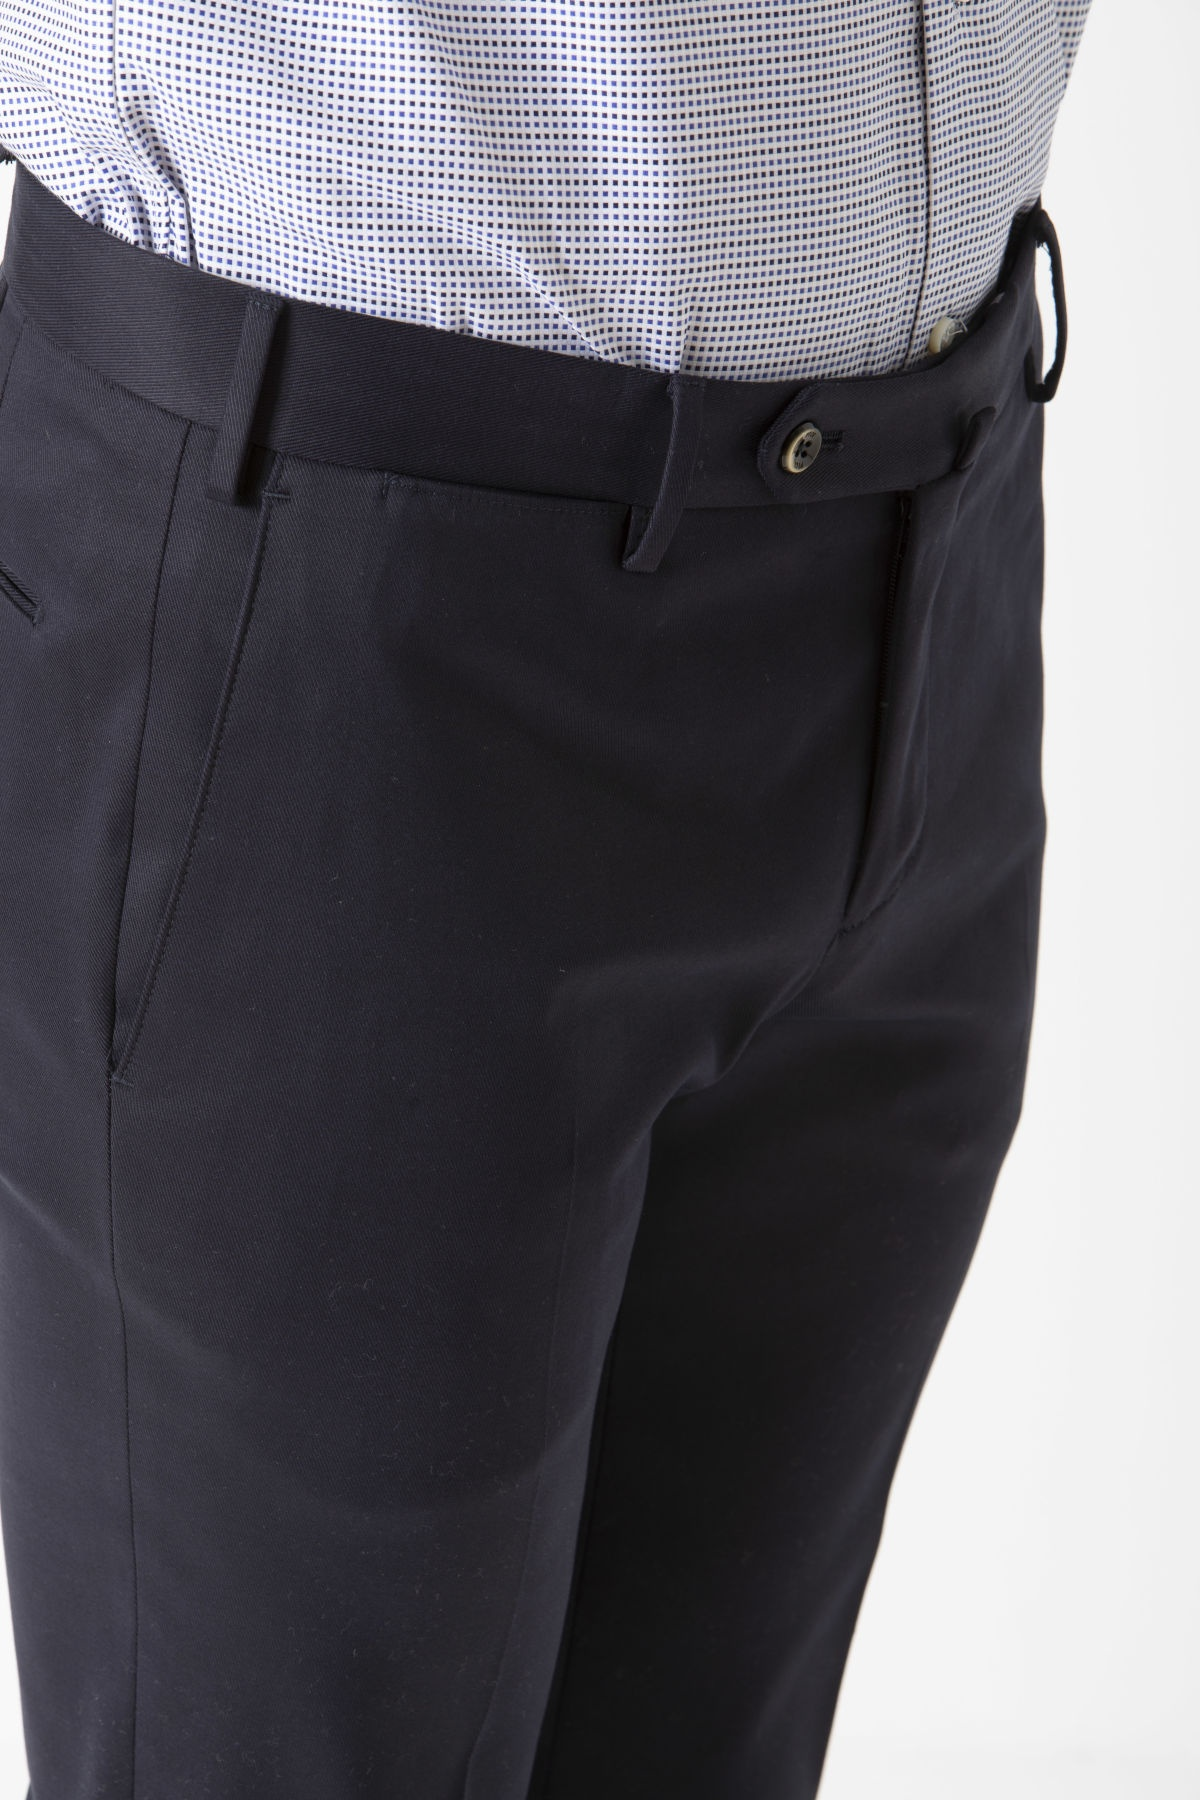 BUSINESS Trousers for man PT01 F/W